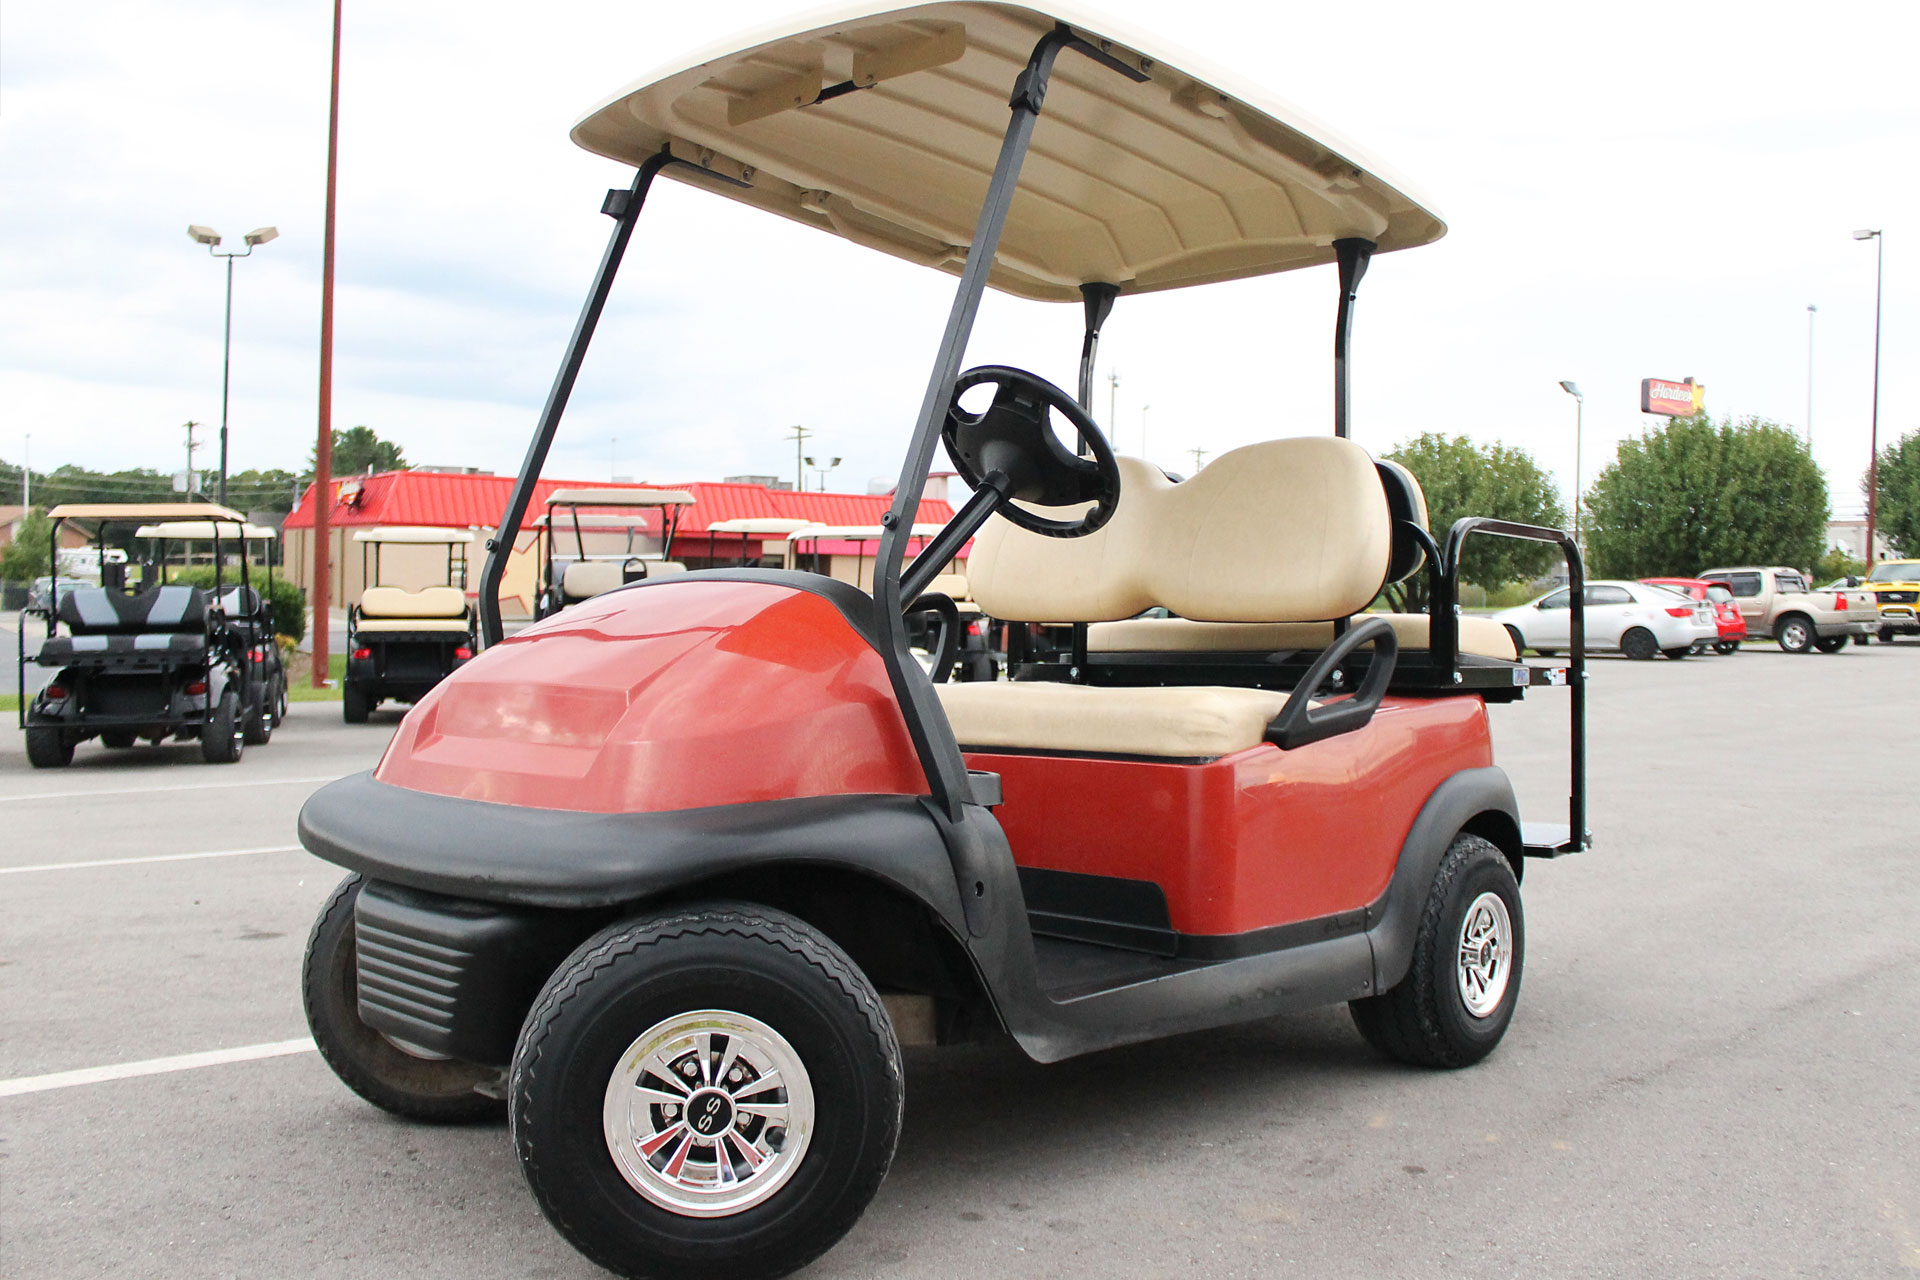 2014 Club Car Precedent With Rear Flip Seat And Ss Wheel Covers 02